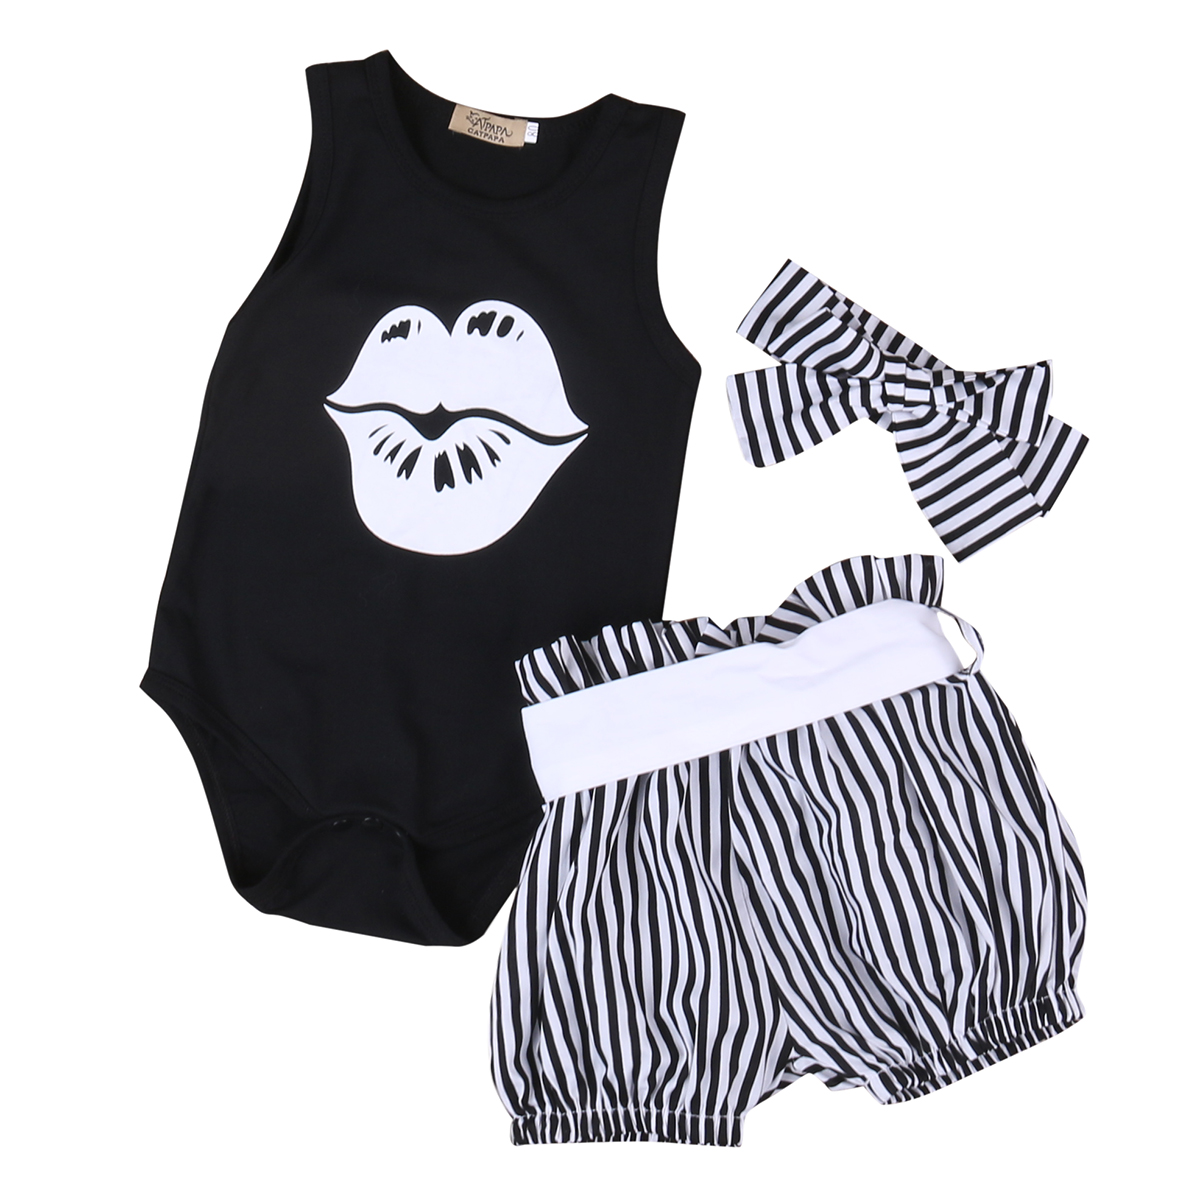 Toddler Infant Baby Girls Baby Boys Unisex Outfits Headband+Romper+Stripe Pants 3PCS Kids Clothes Set puseky 2017 infant romper baby boys girls jumpsuit newborn bebe clothing hooded toddler baby clothes cute panda romper costumes